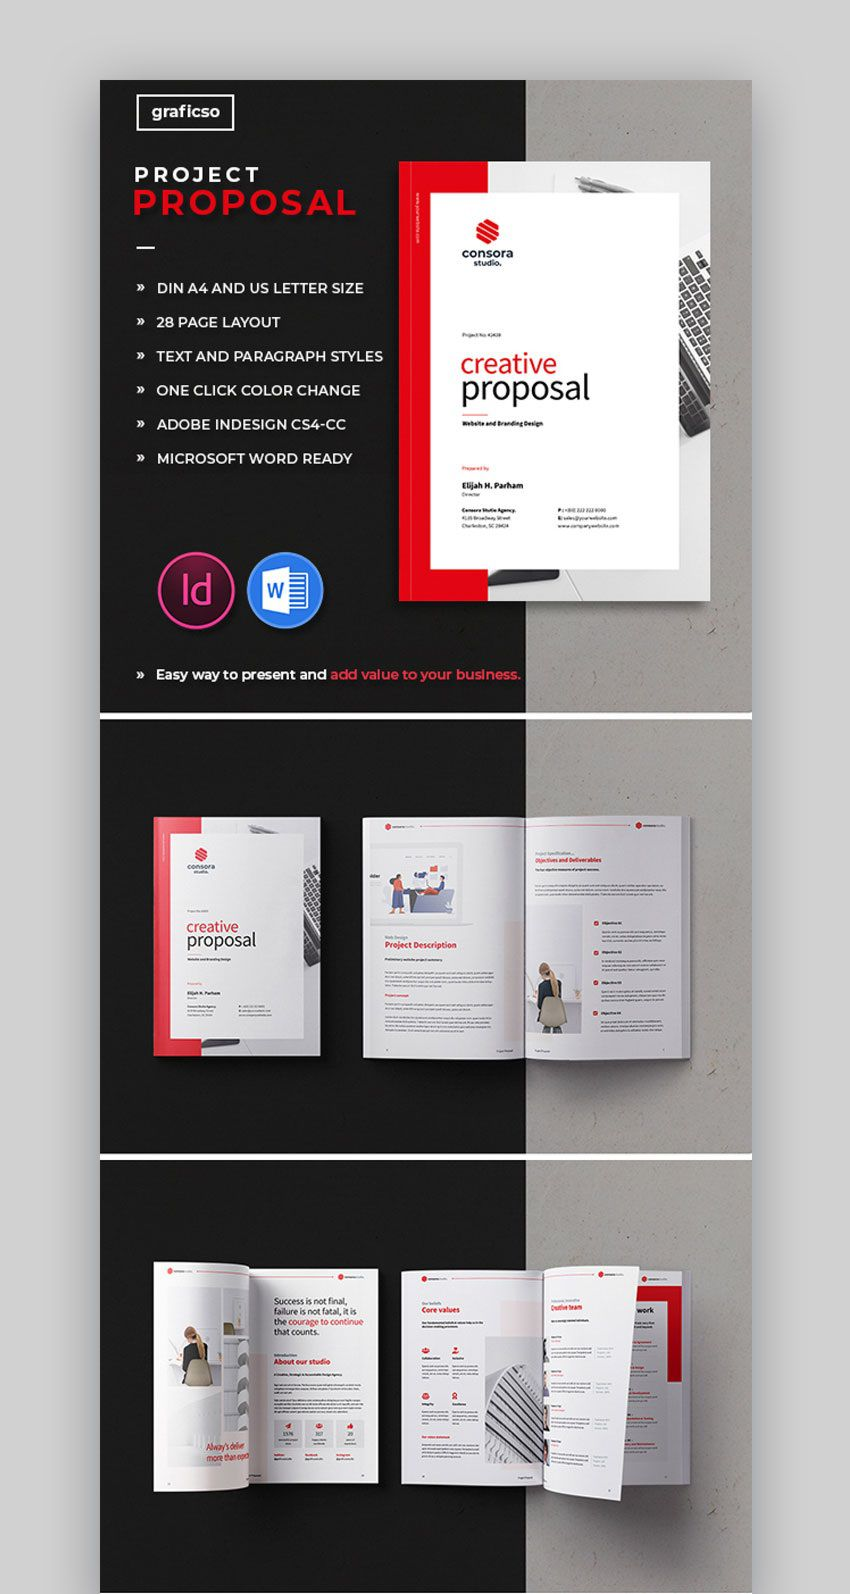 007 Frightening Graphic Design Proposal Template Word Full